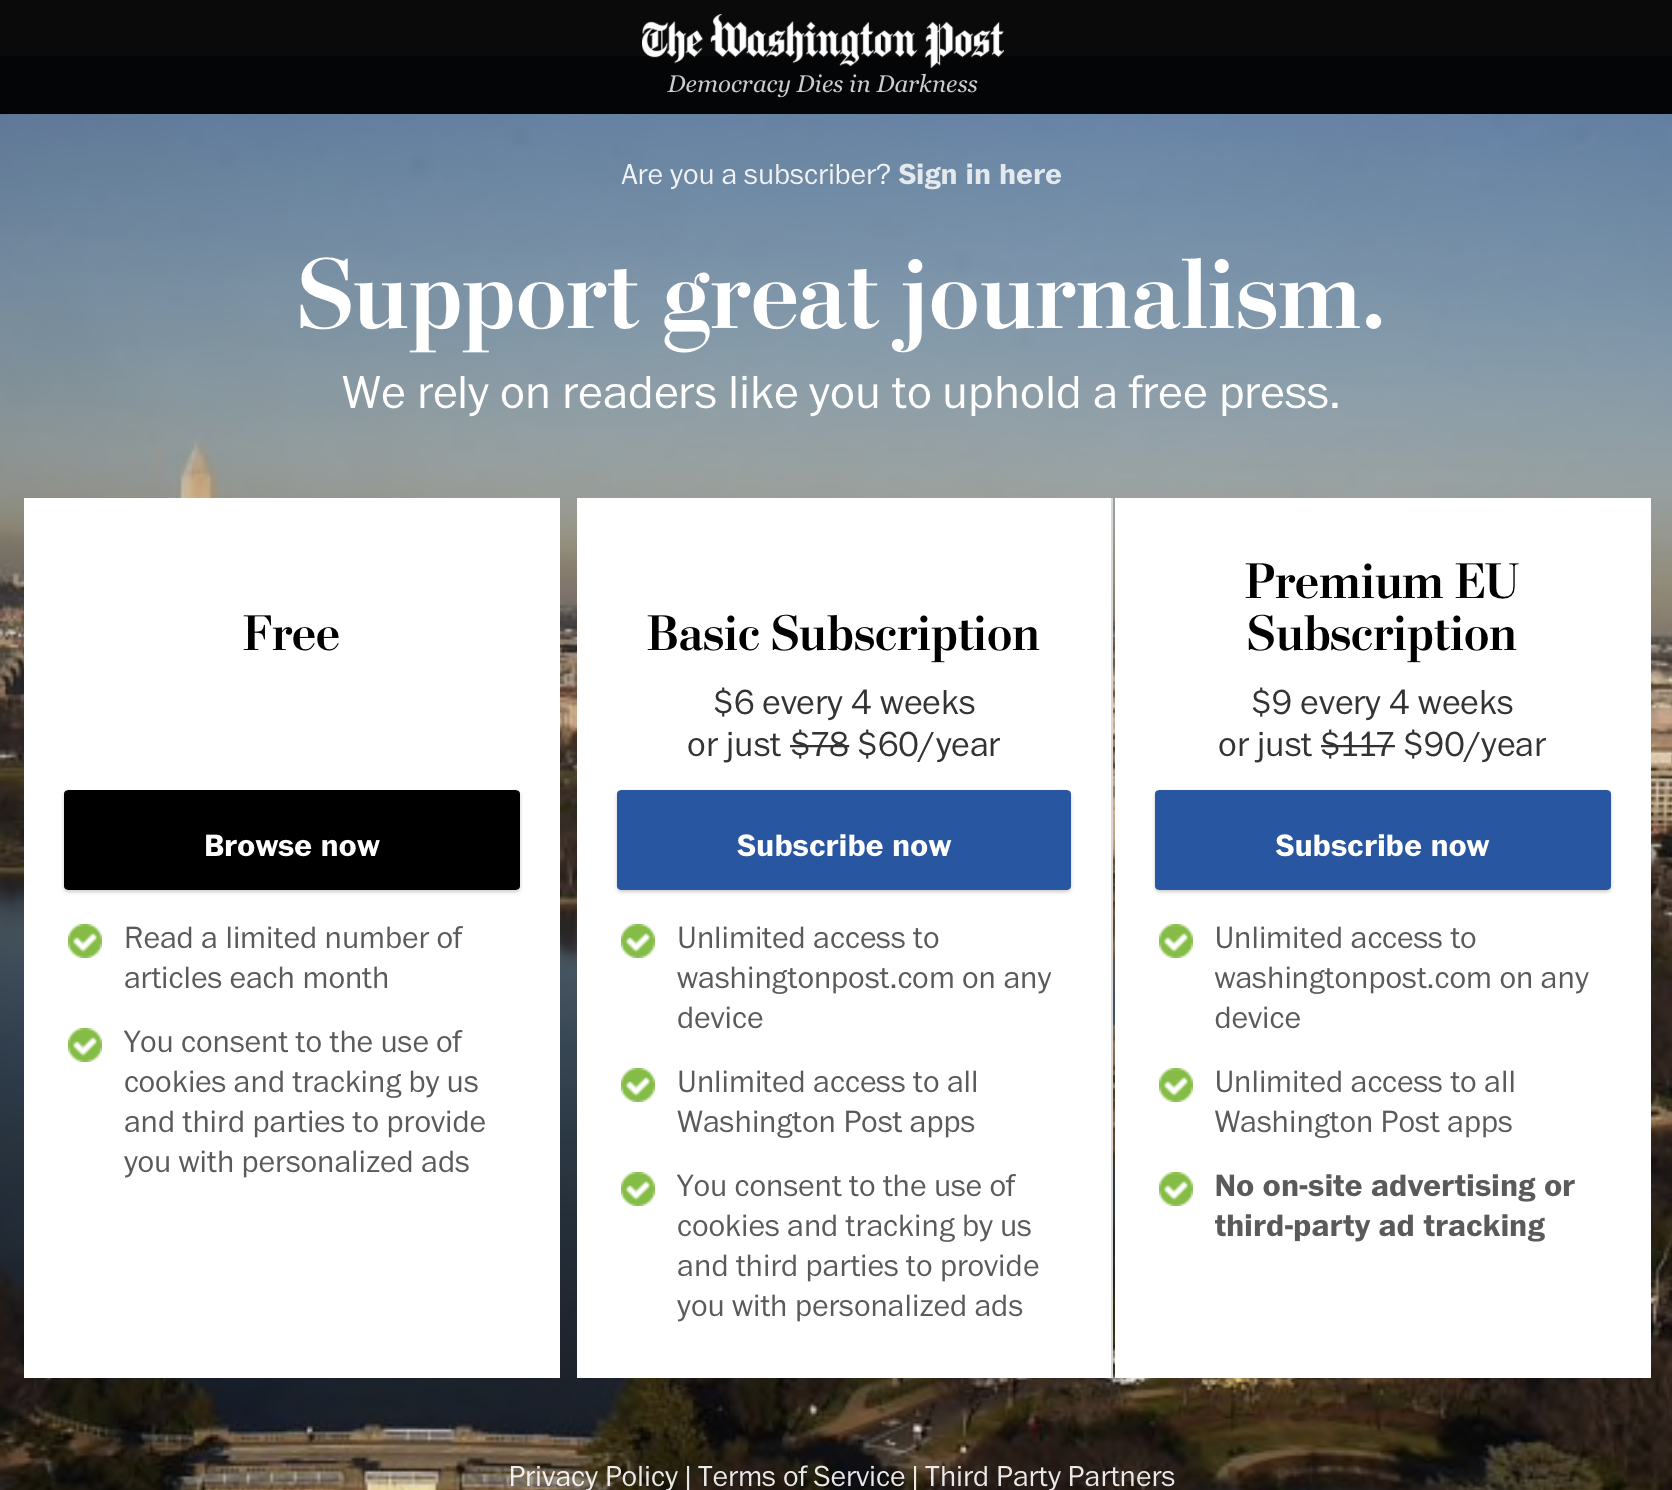 Washington Post greeting for Europeans